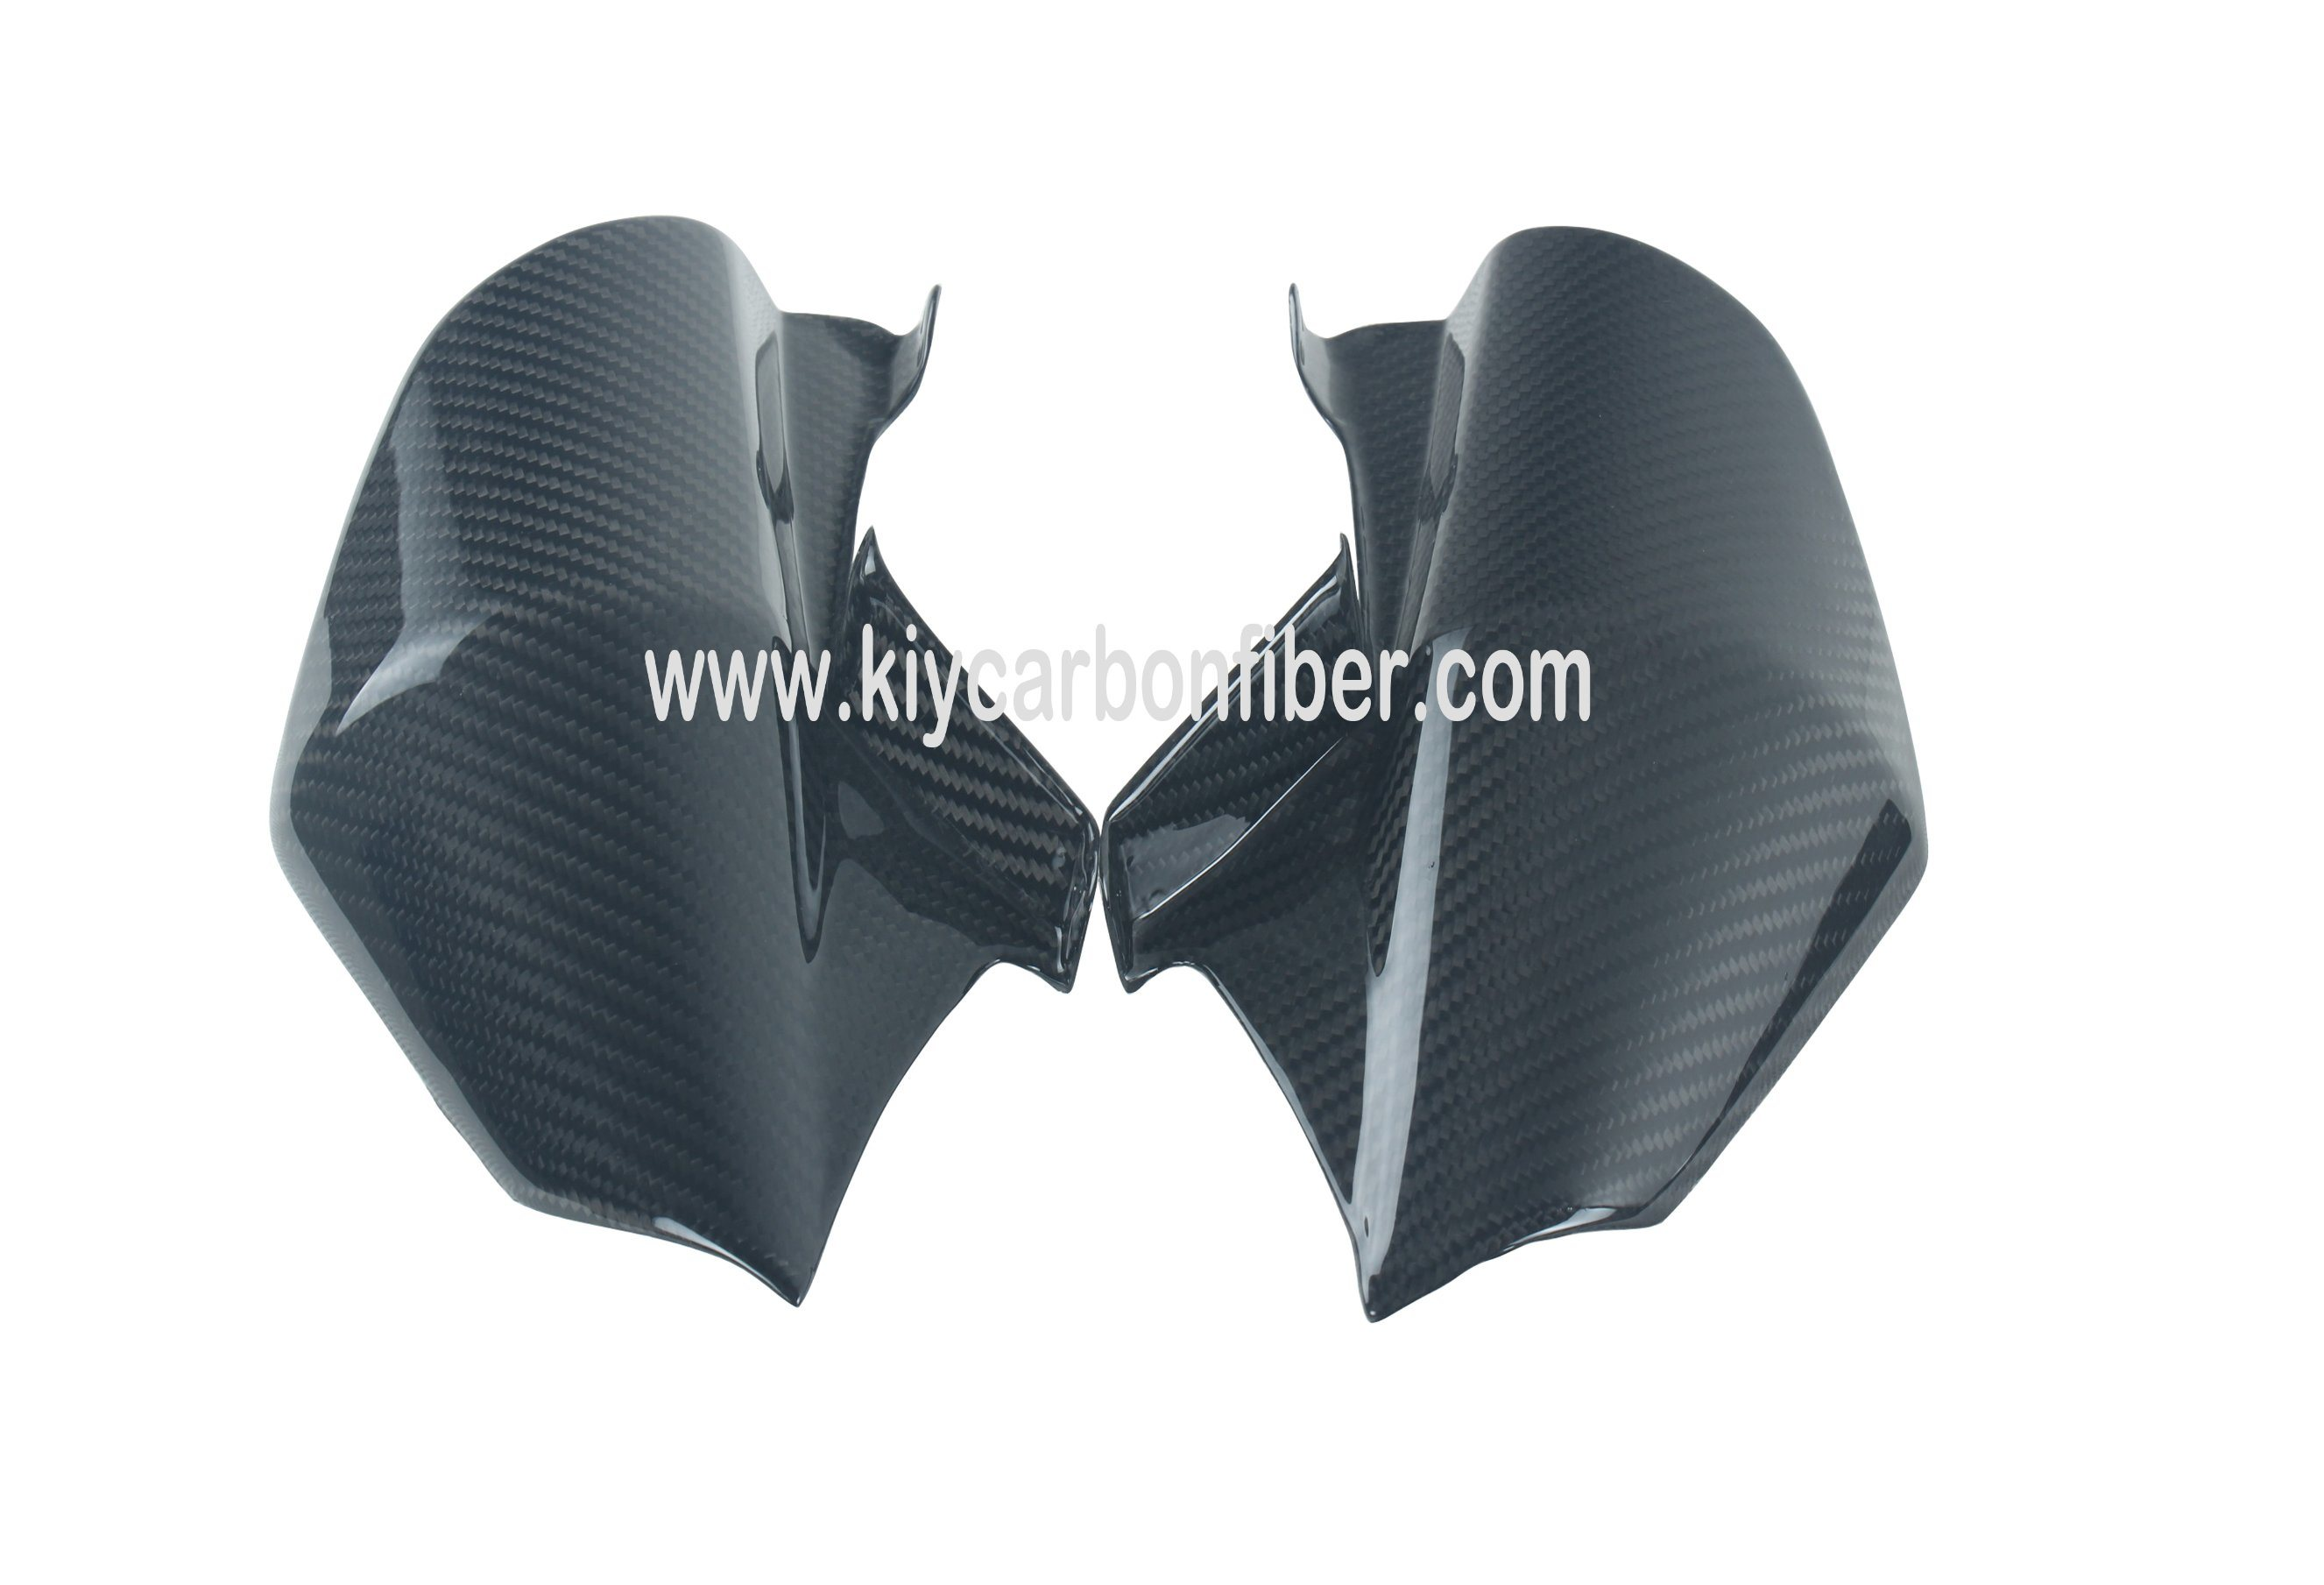 Carbon Fiber Heat Shield Muffler for Ktm 990 Supermoto R